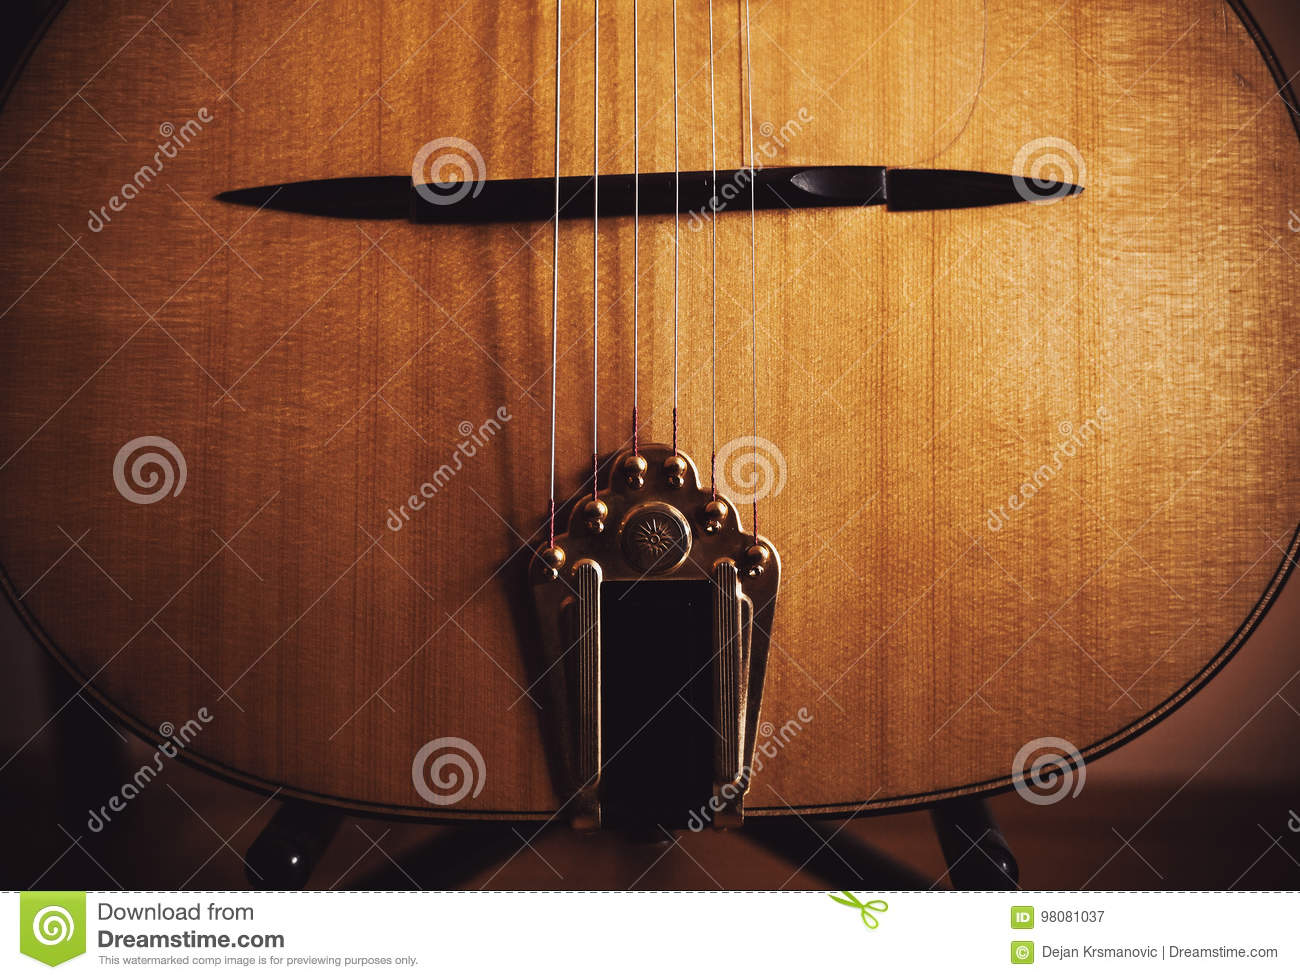 Closeup view of an old manouche acoustic guitar, vintage style.